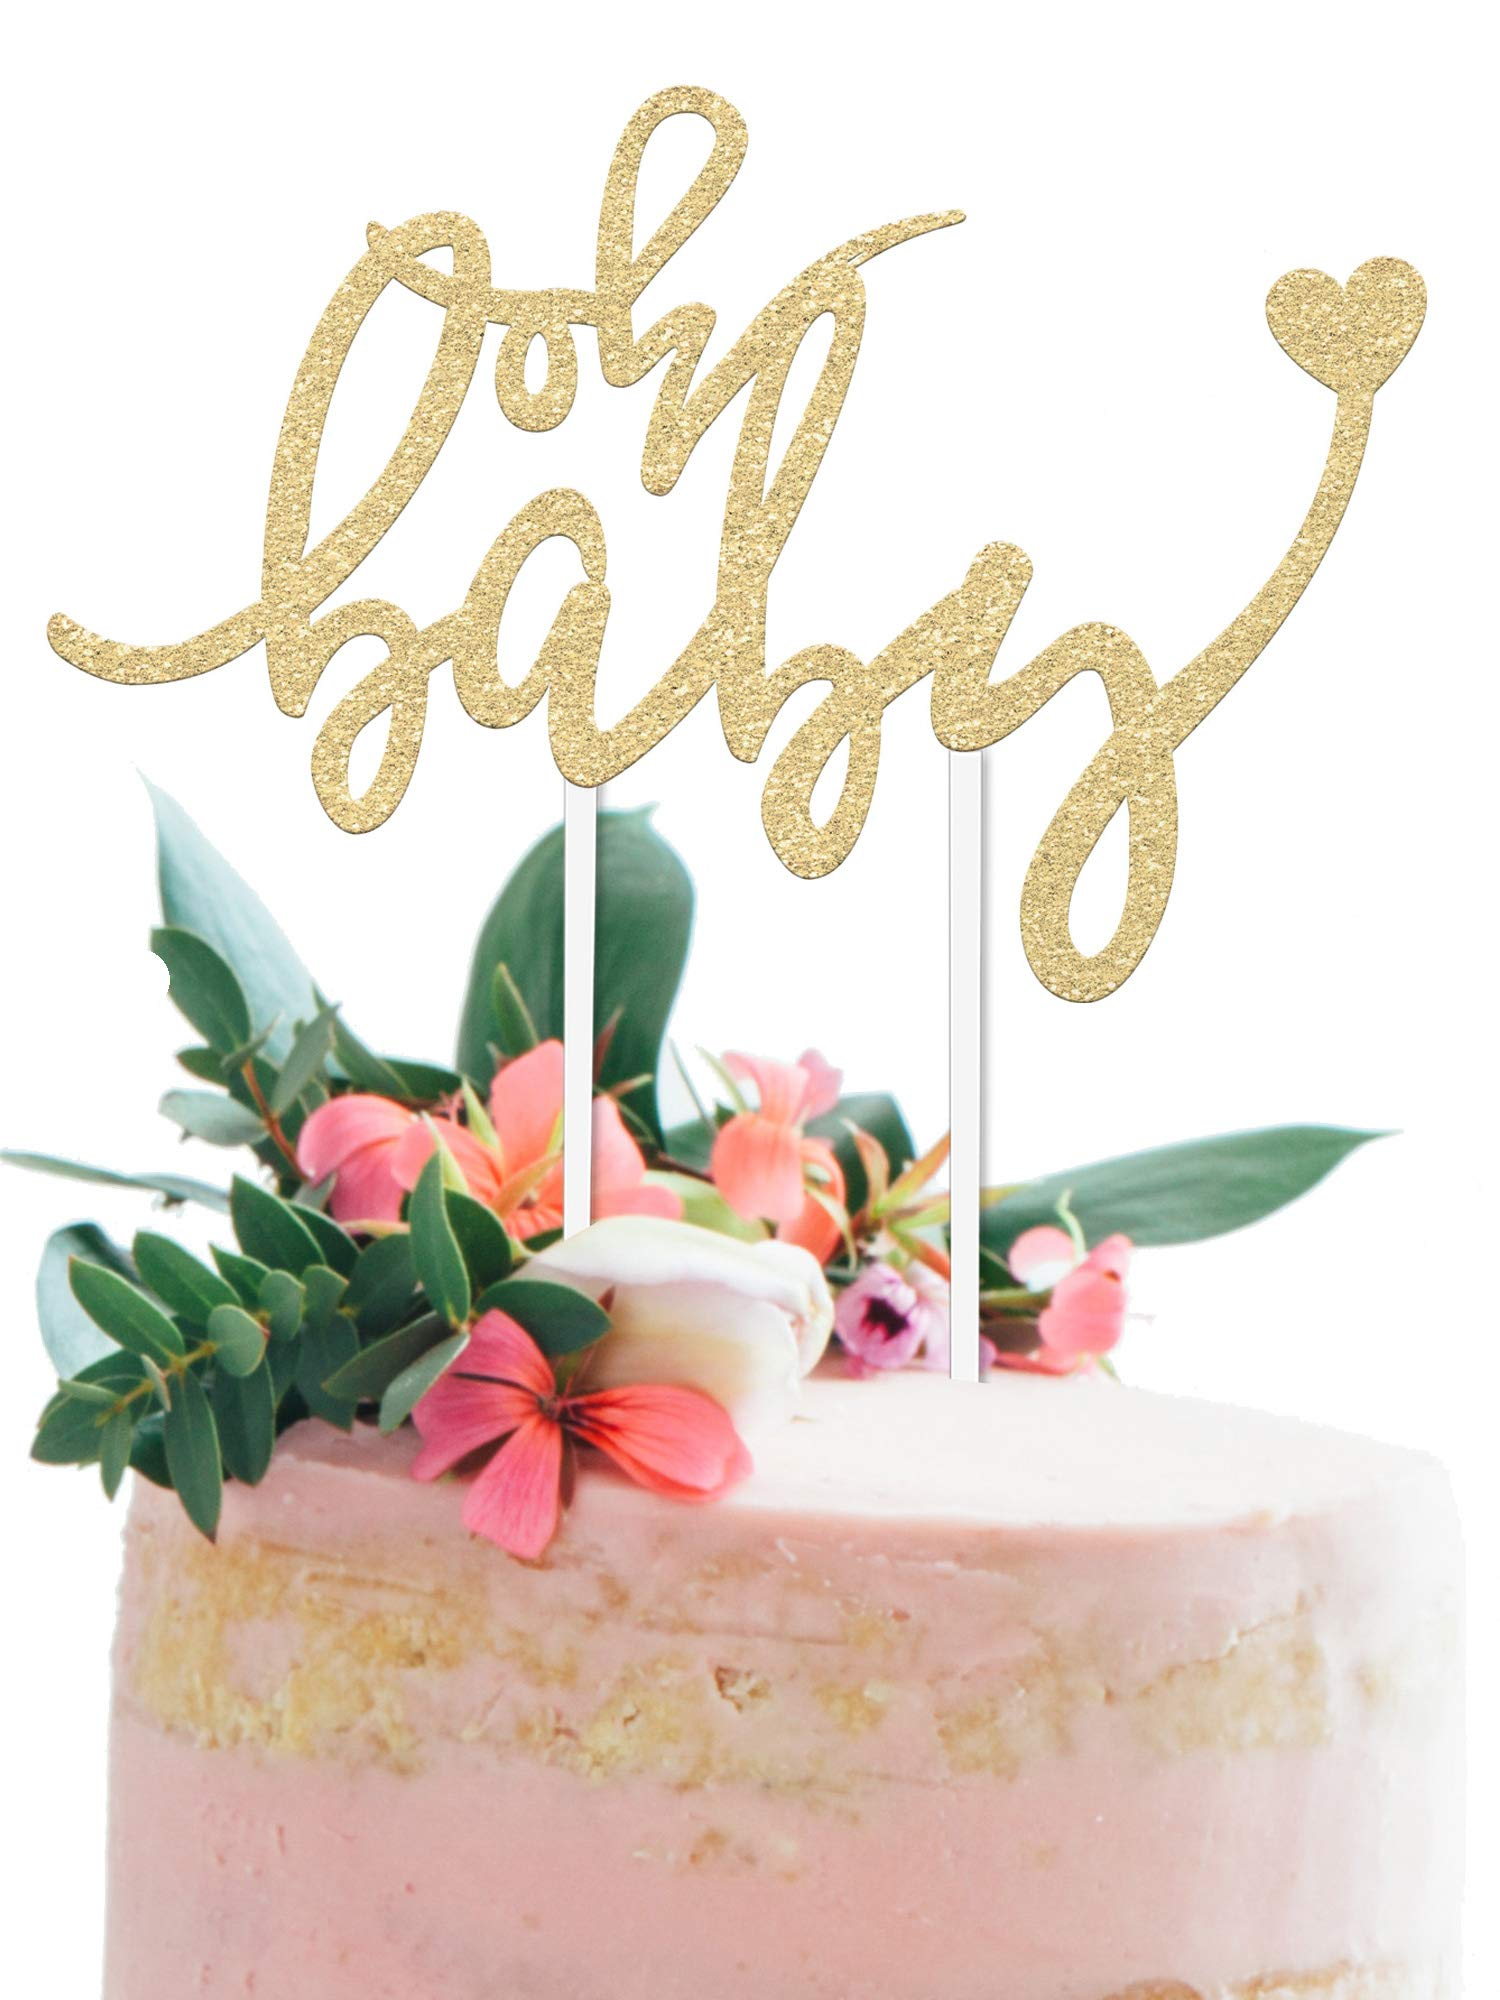 Baby Shower Cake Topper -''OH BABY'' - 6.5'' x 4'' Double Sided Champagne Soft Gold Glitter Cardstock Topper For Baby Showers and Gender Reveal Parties for Boys and Girls - Food-Safe & Eco-Friendly Stand